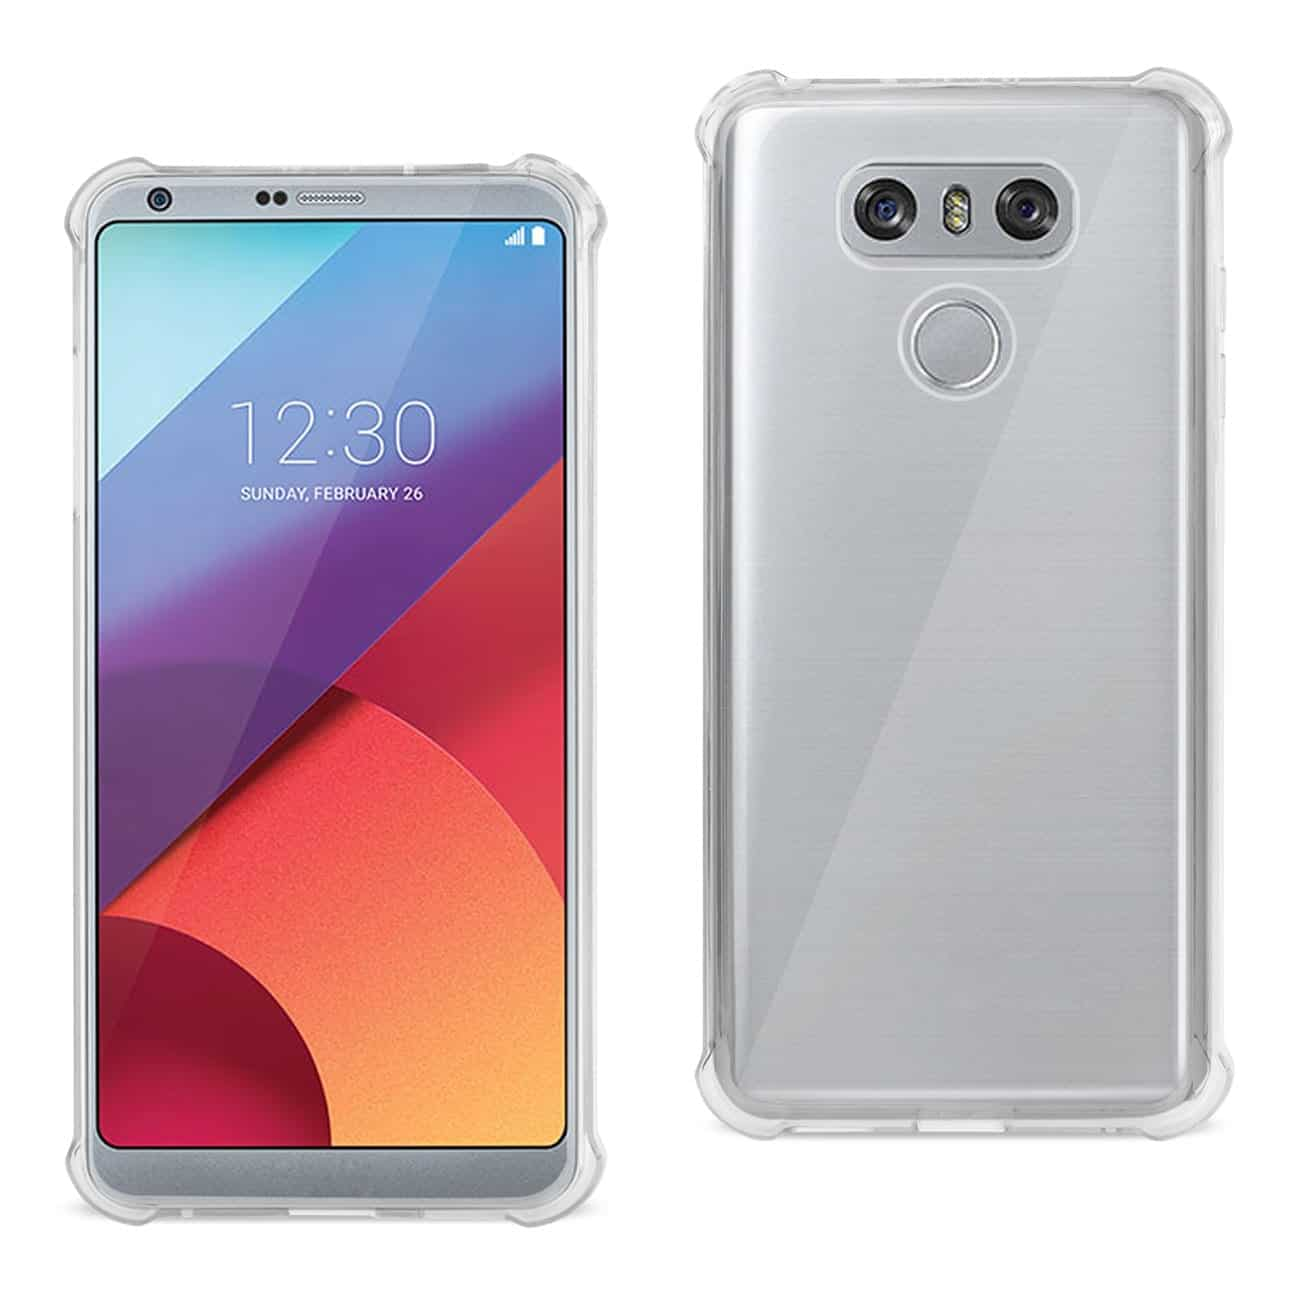 LG G6 CLEAR BUMPER CASE WITH AIR CUSHION SHOCK ABSORPTION IN CLEAR